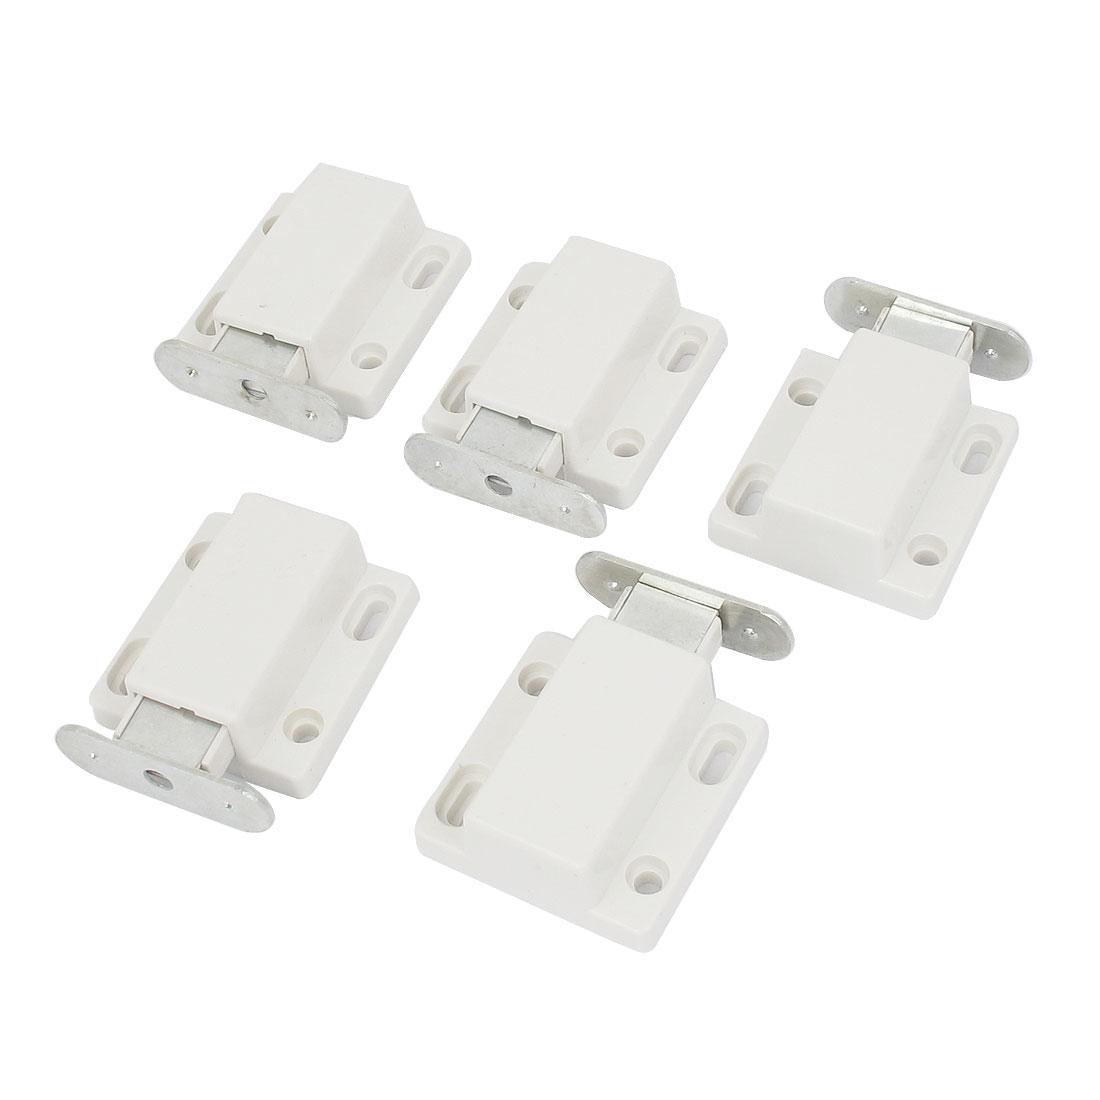 Cabinet Cupboard Door Plastic Magnetic Latch Catch White 47mm Long 5 Pcs